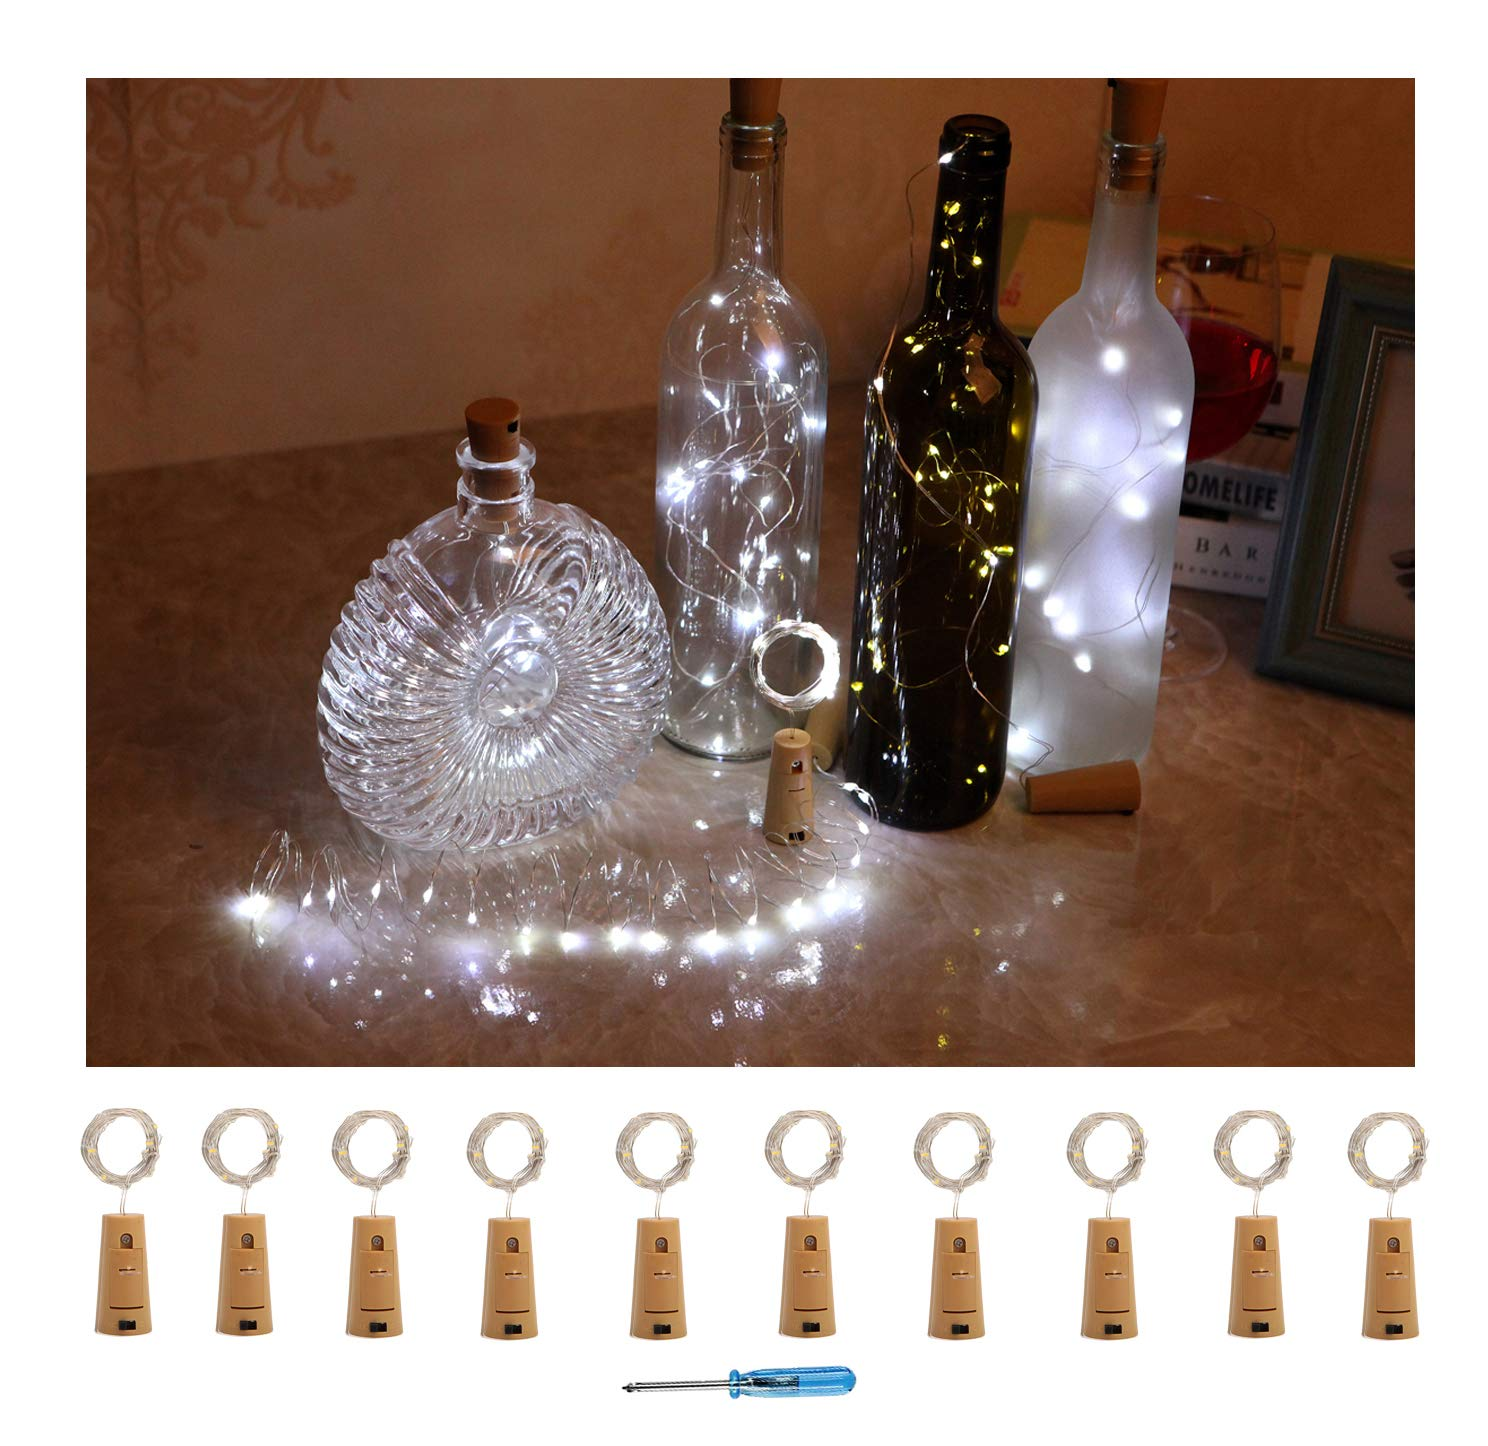 10 Pack Battery Operated Cork Lights-20 Led Copper Wine Bottles Fairy String lights for Garden, Patio Pathway Décor, Outdoor, DIY, Party, Wedding, Christmas, Halloween, Holiday Decorations (10, Colorful-Steady) Patio Pathway Décor Sunlane